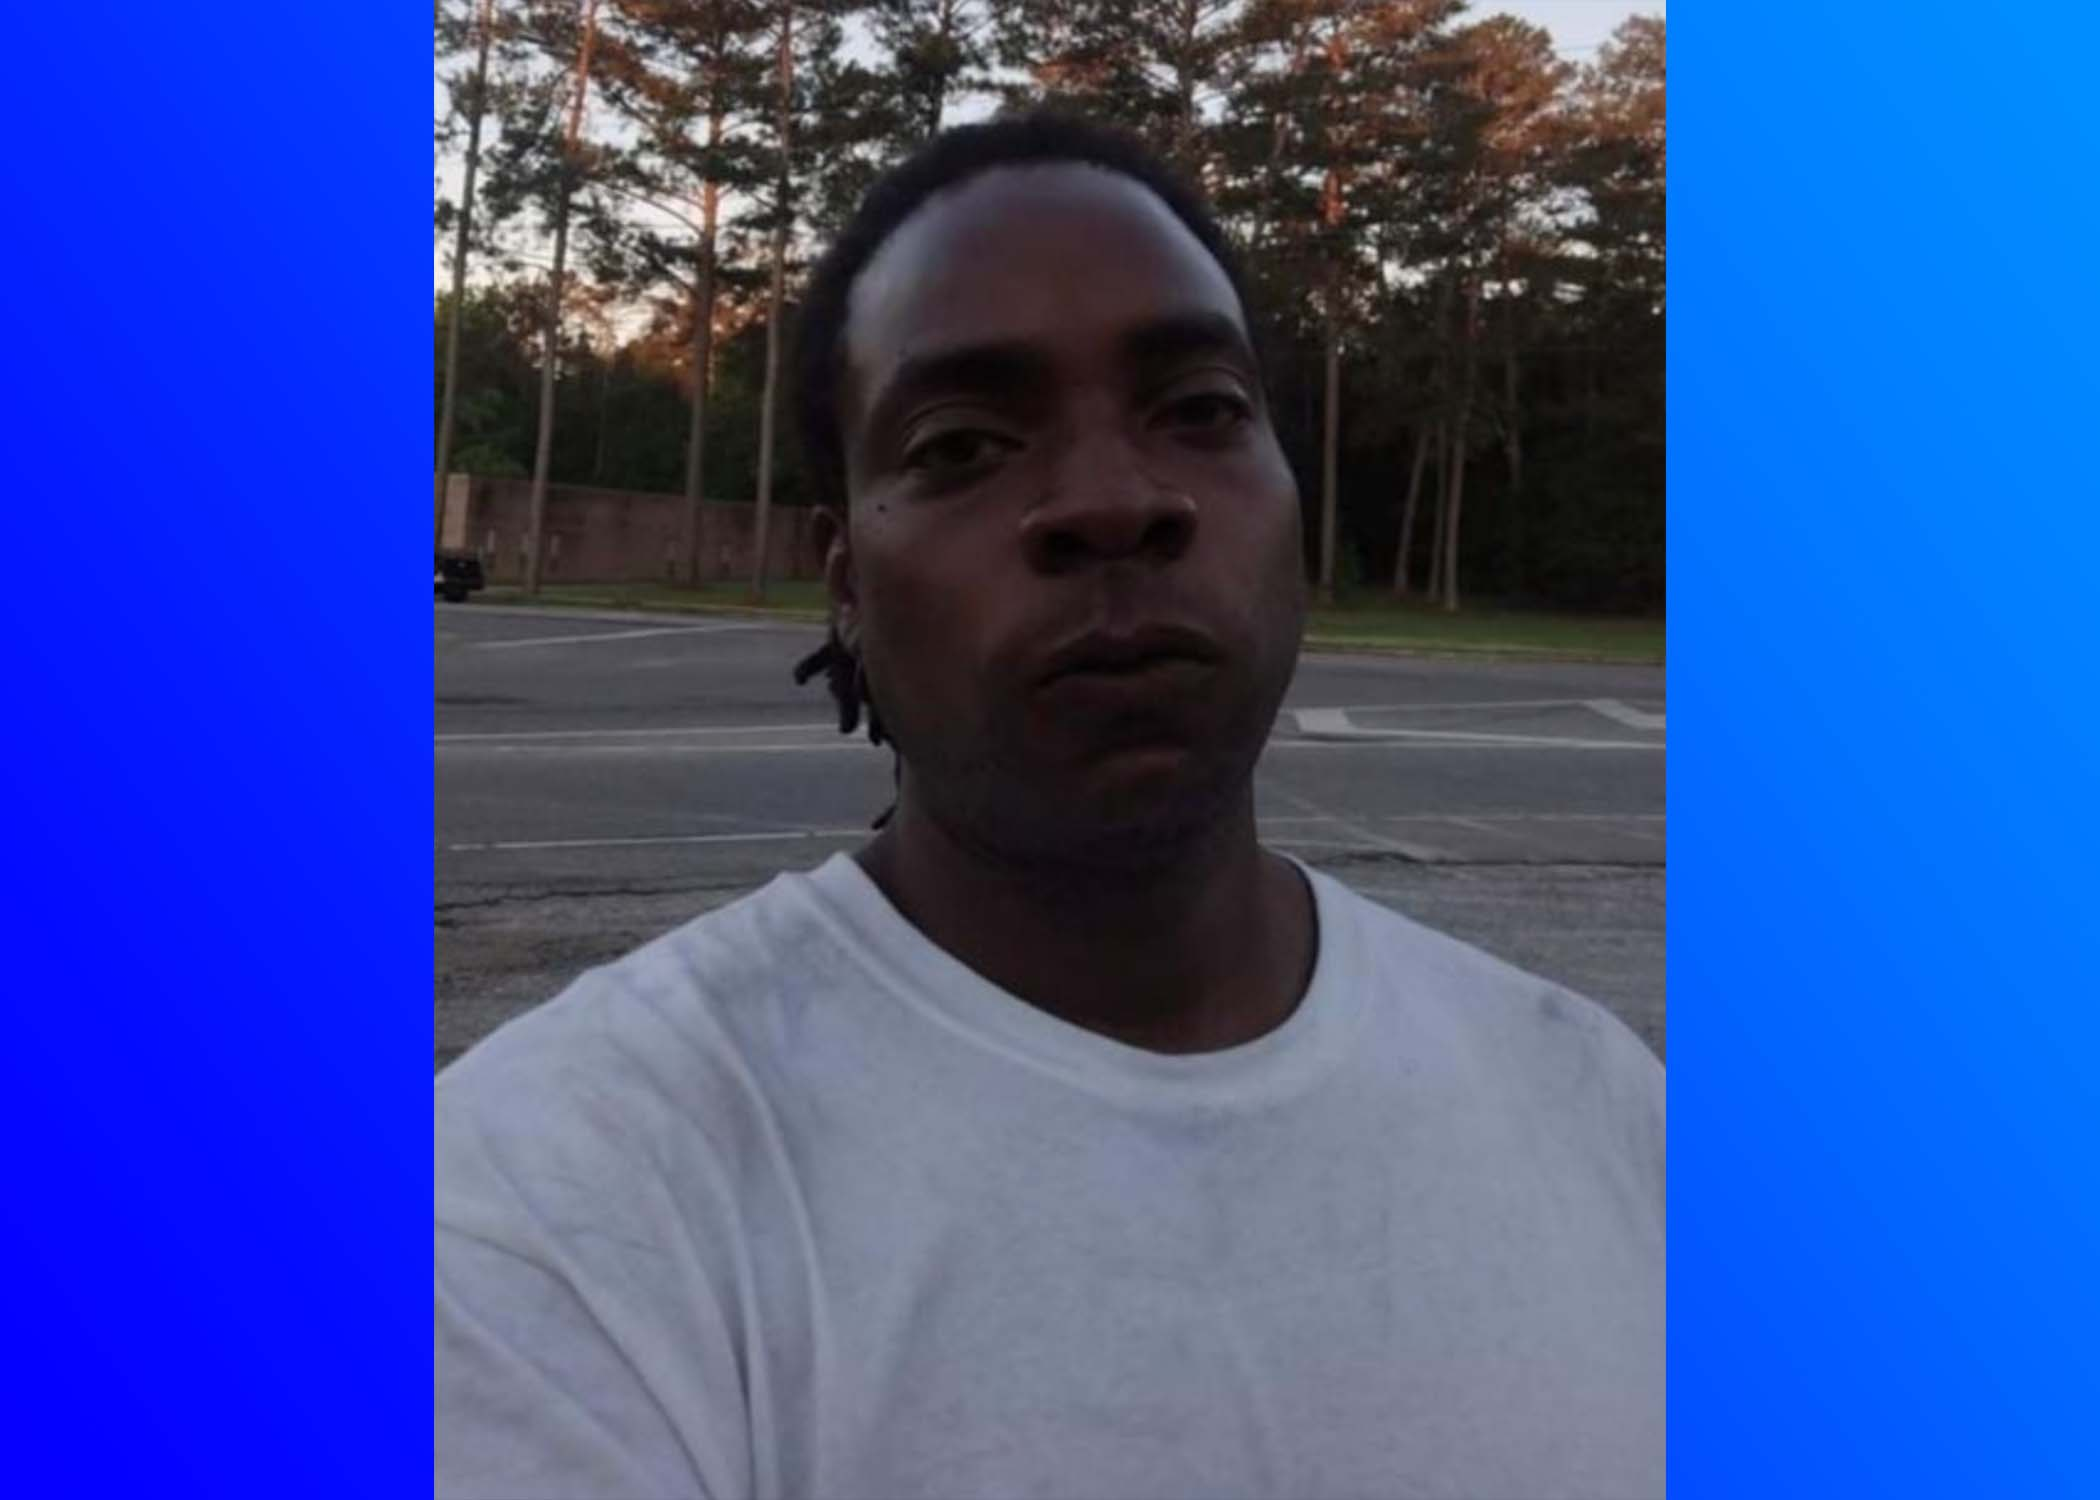 Montgomery Police Department seeks assistance in locating missing man